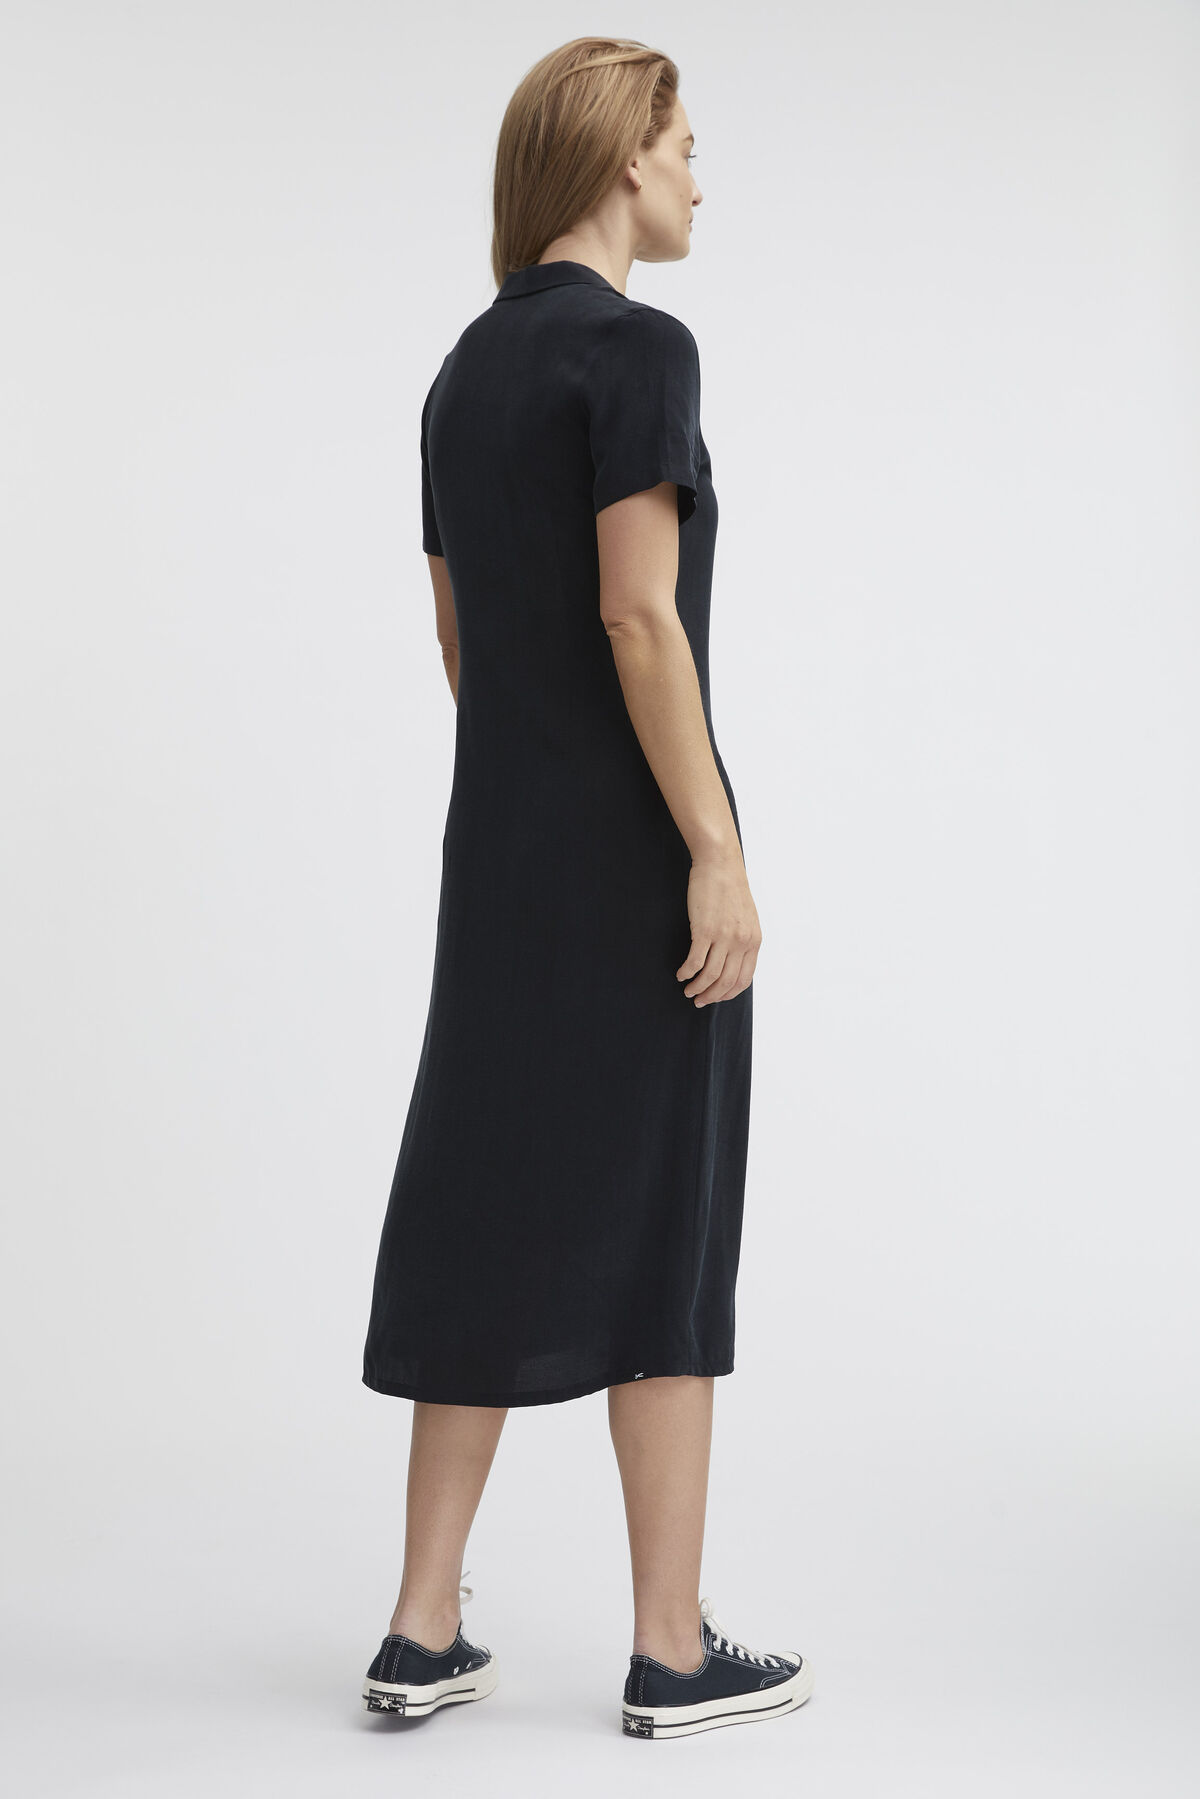 HOLNESS DRESS Silk Touch Cupro - Midi